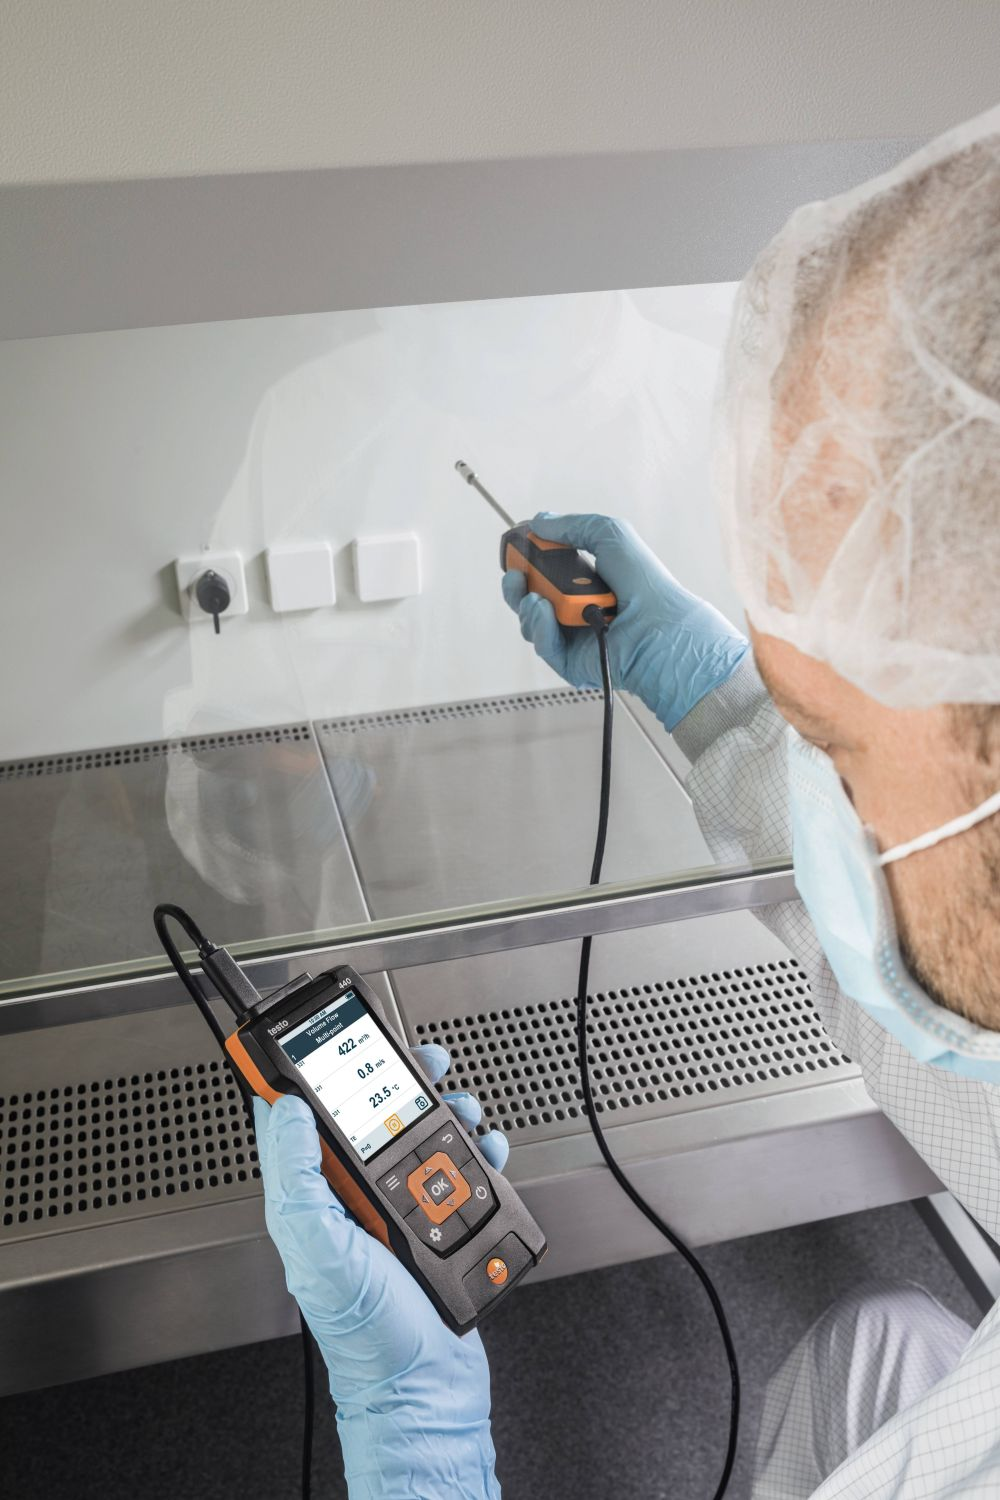 Volumetric flow measurement in fume cupboards with fume cupboard probe and testo 440